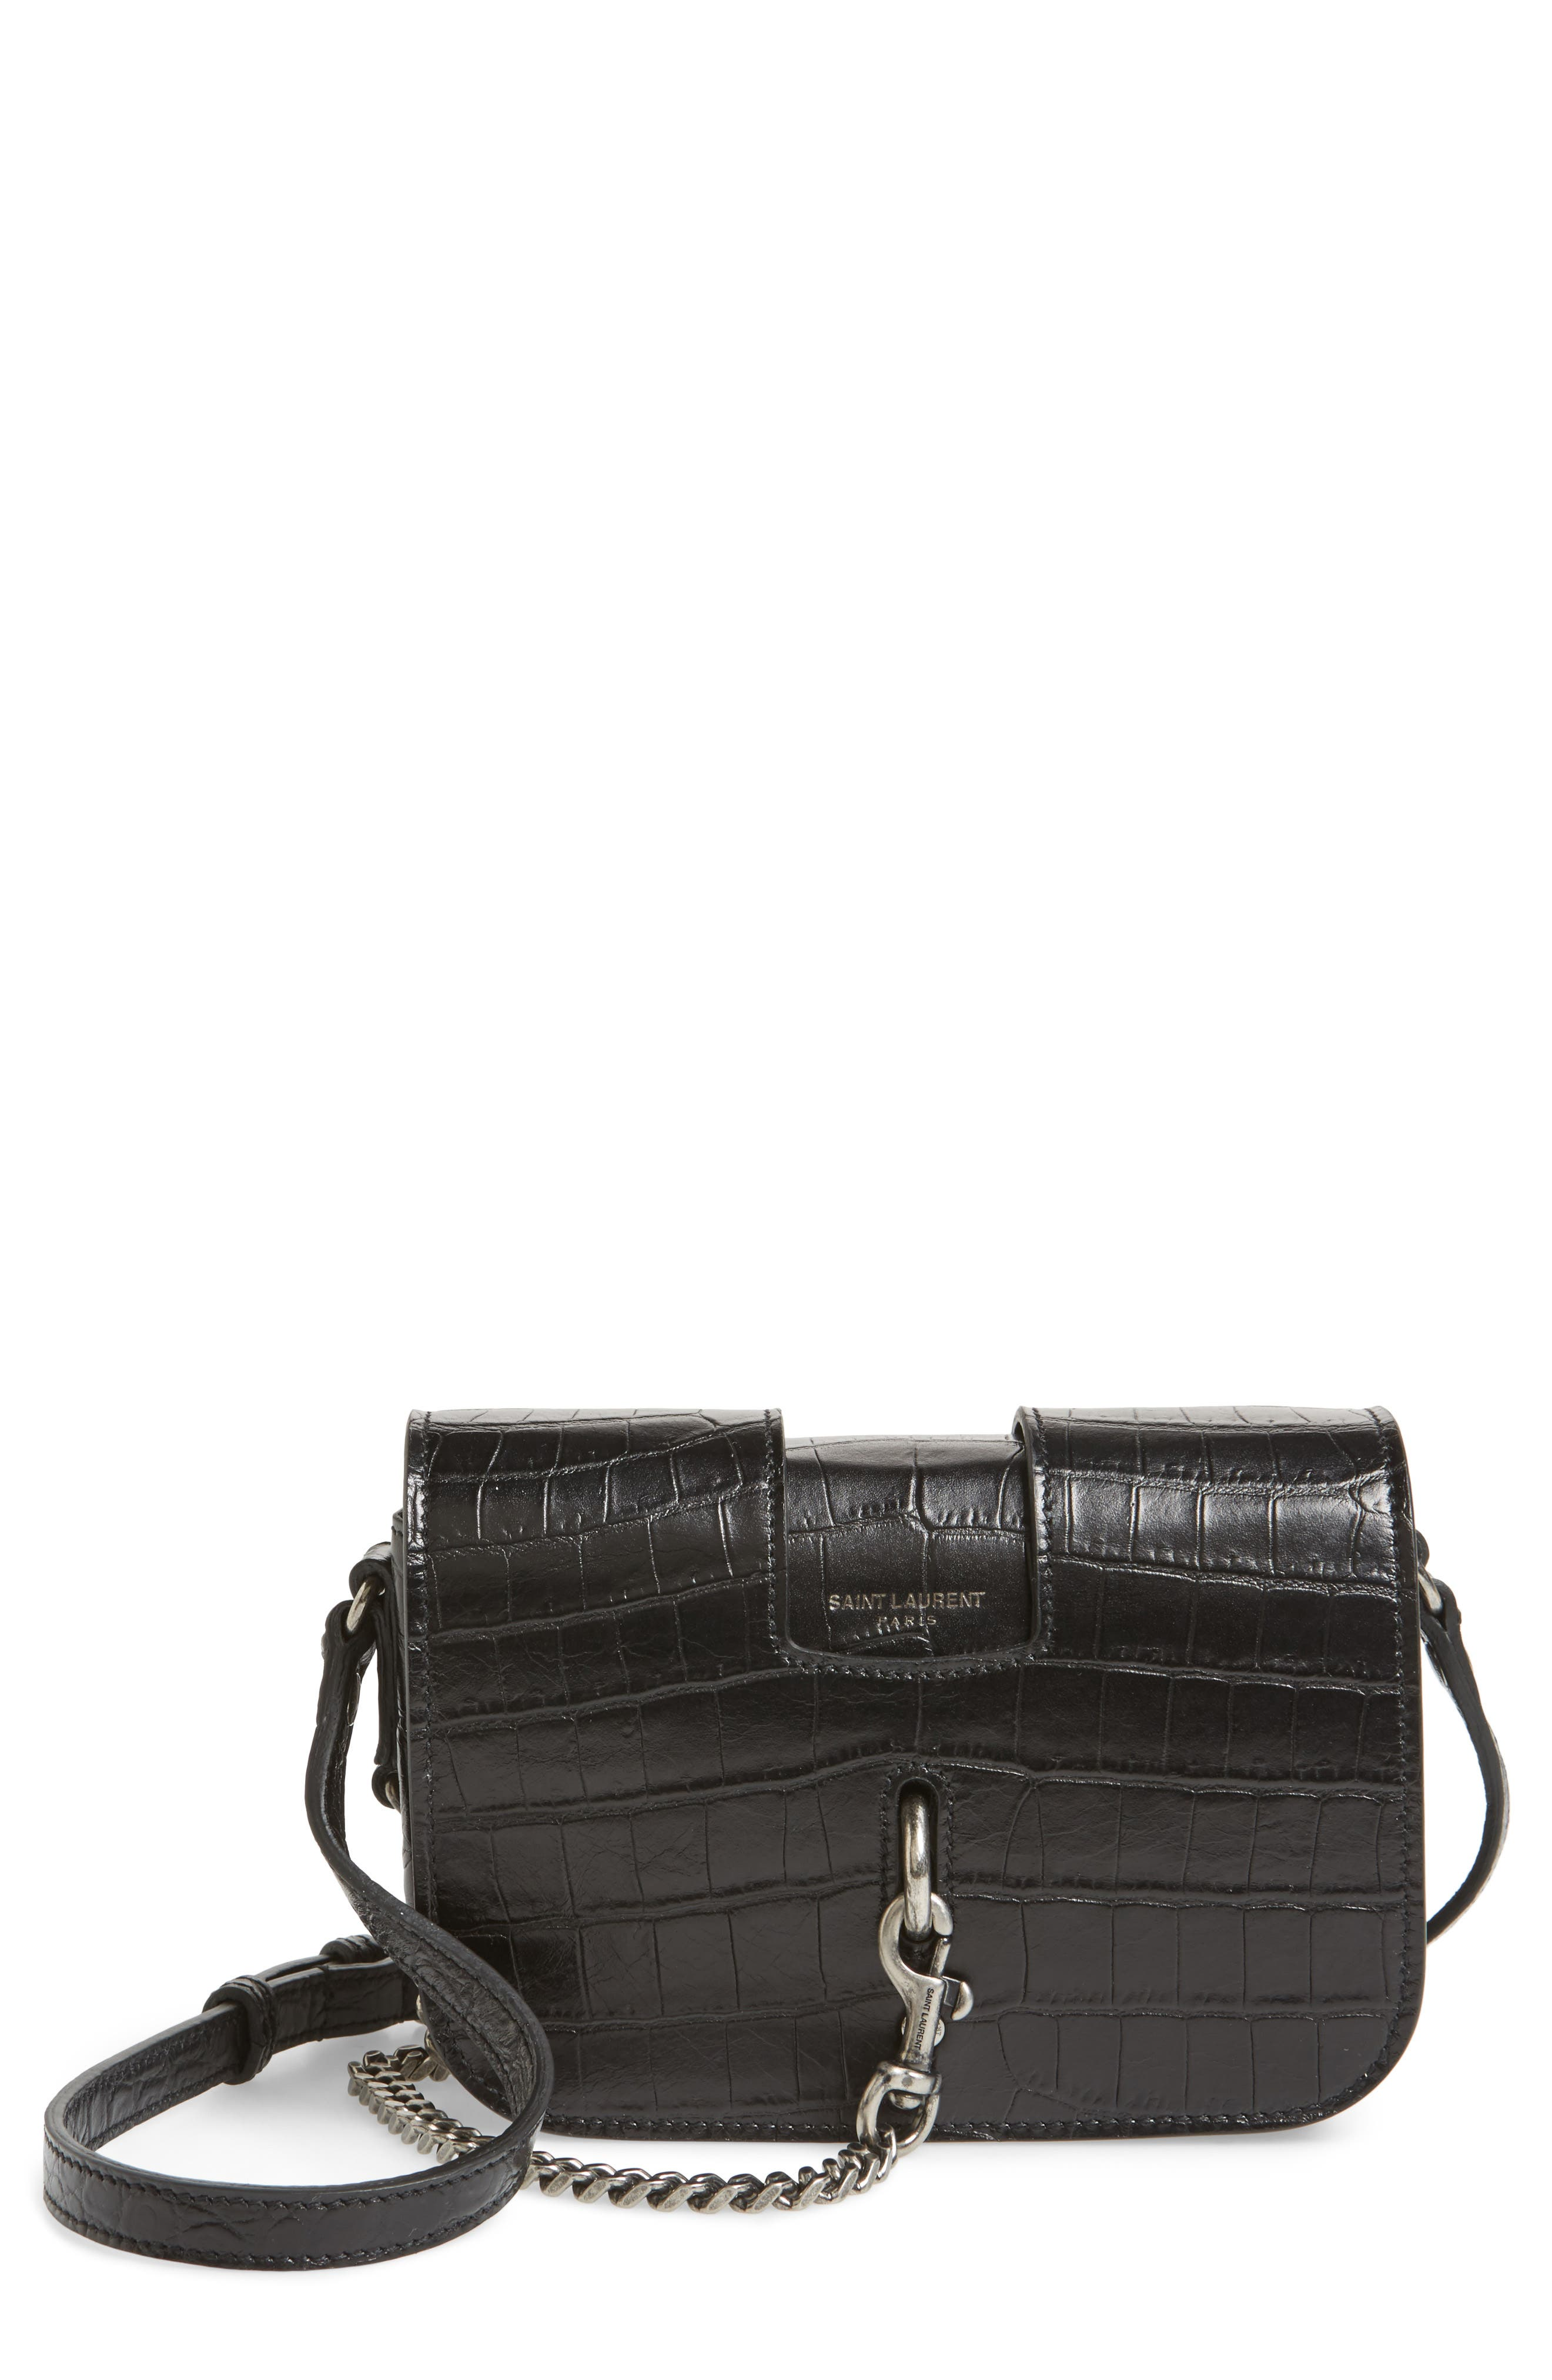 Saint Laurent Croc Embossed Leather Crossbody Bag